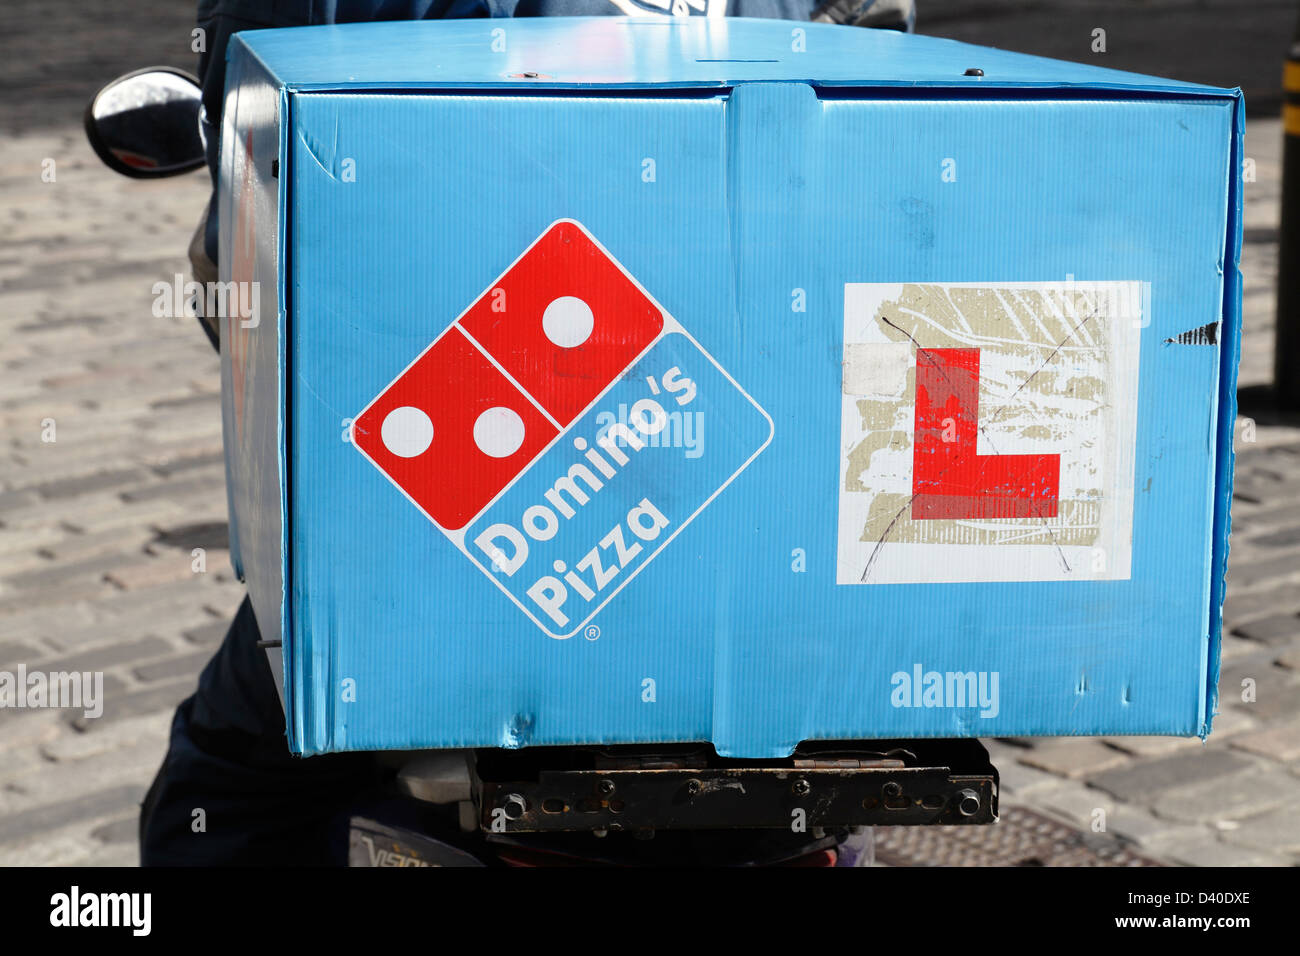 A Domino's Pizza delivery on a scooter in Scotland, UK - Stock Image